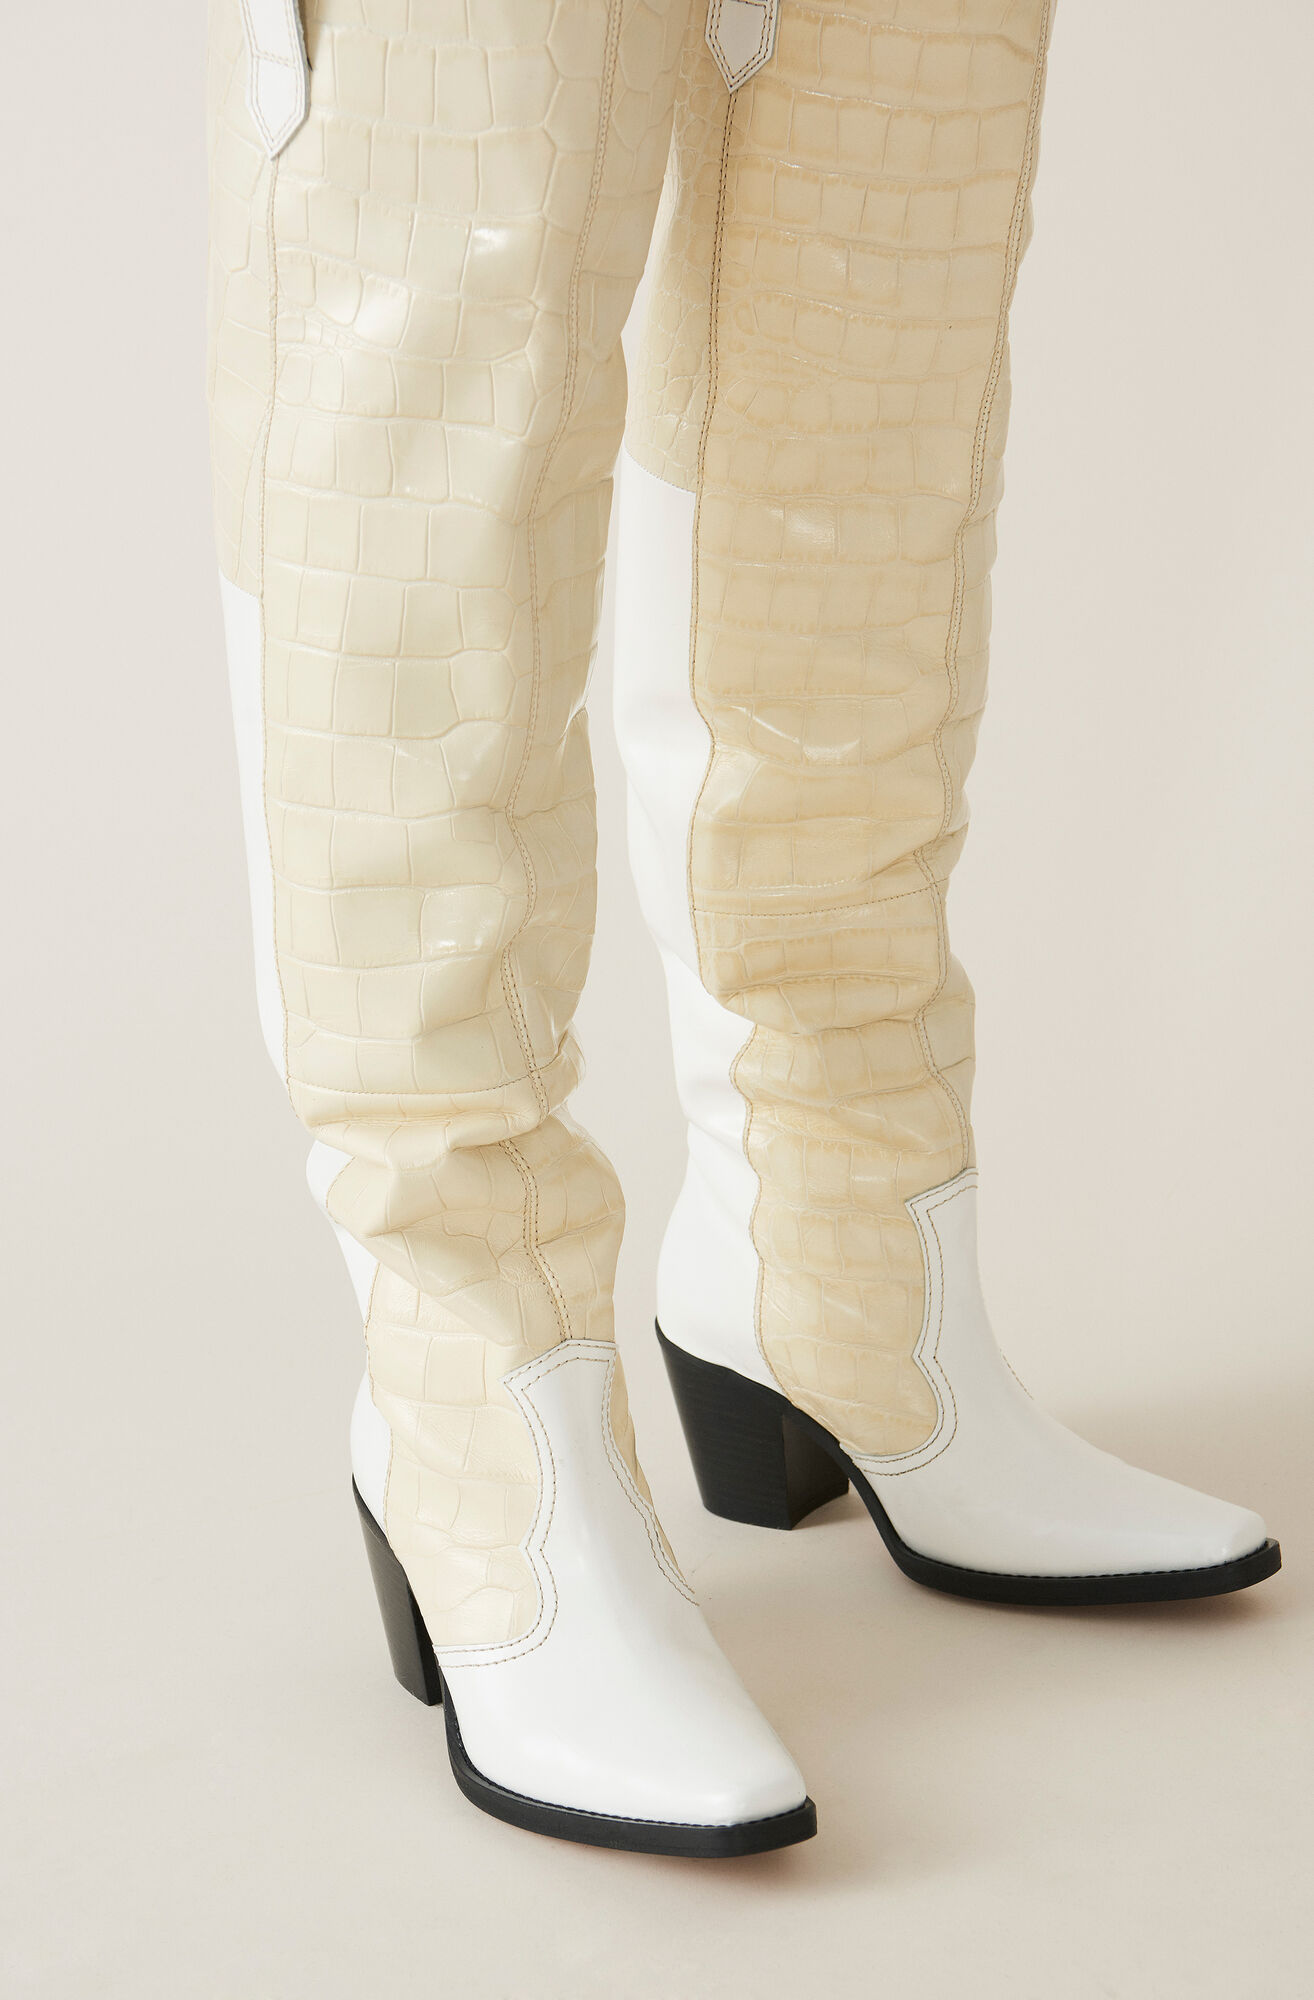 High Western Boots, Bright White, hi-res